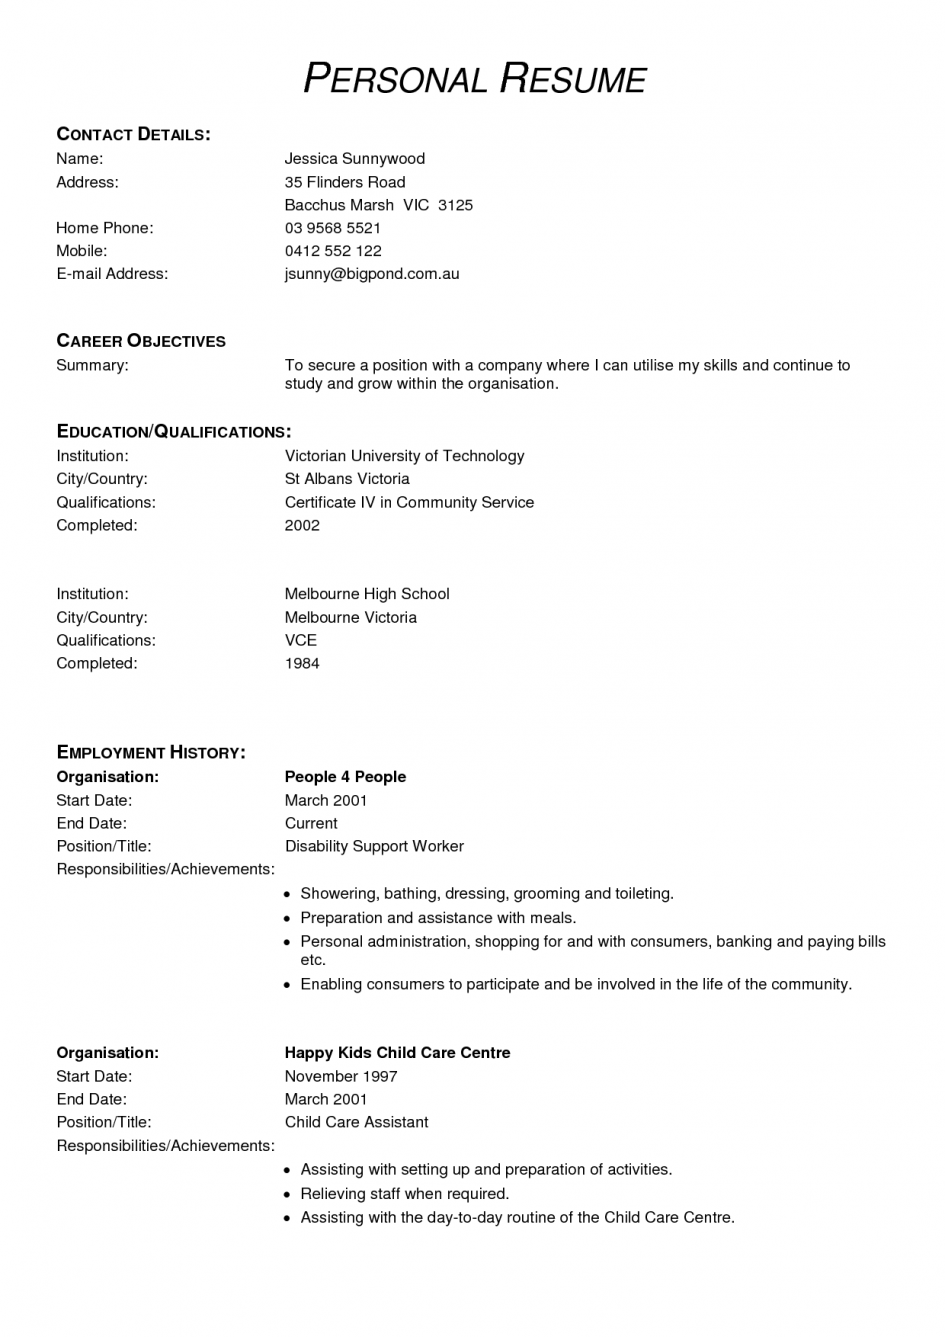 Health care assistant cv with no 945 1337 for Carer cover letter no experience